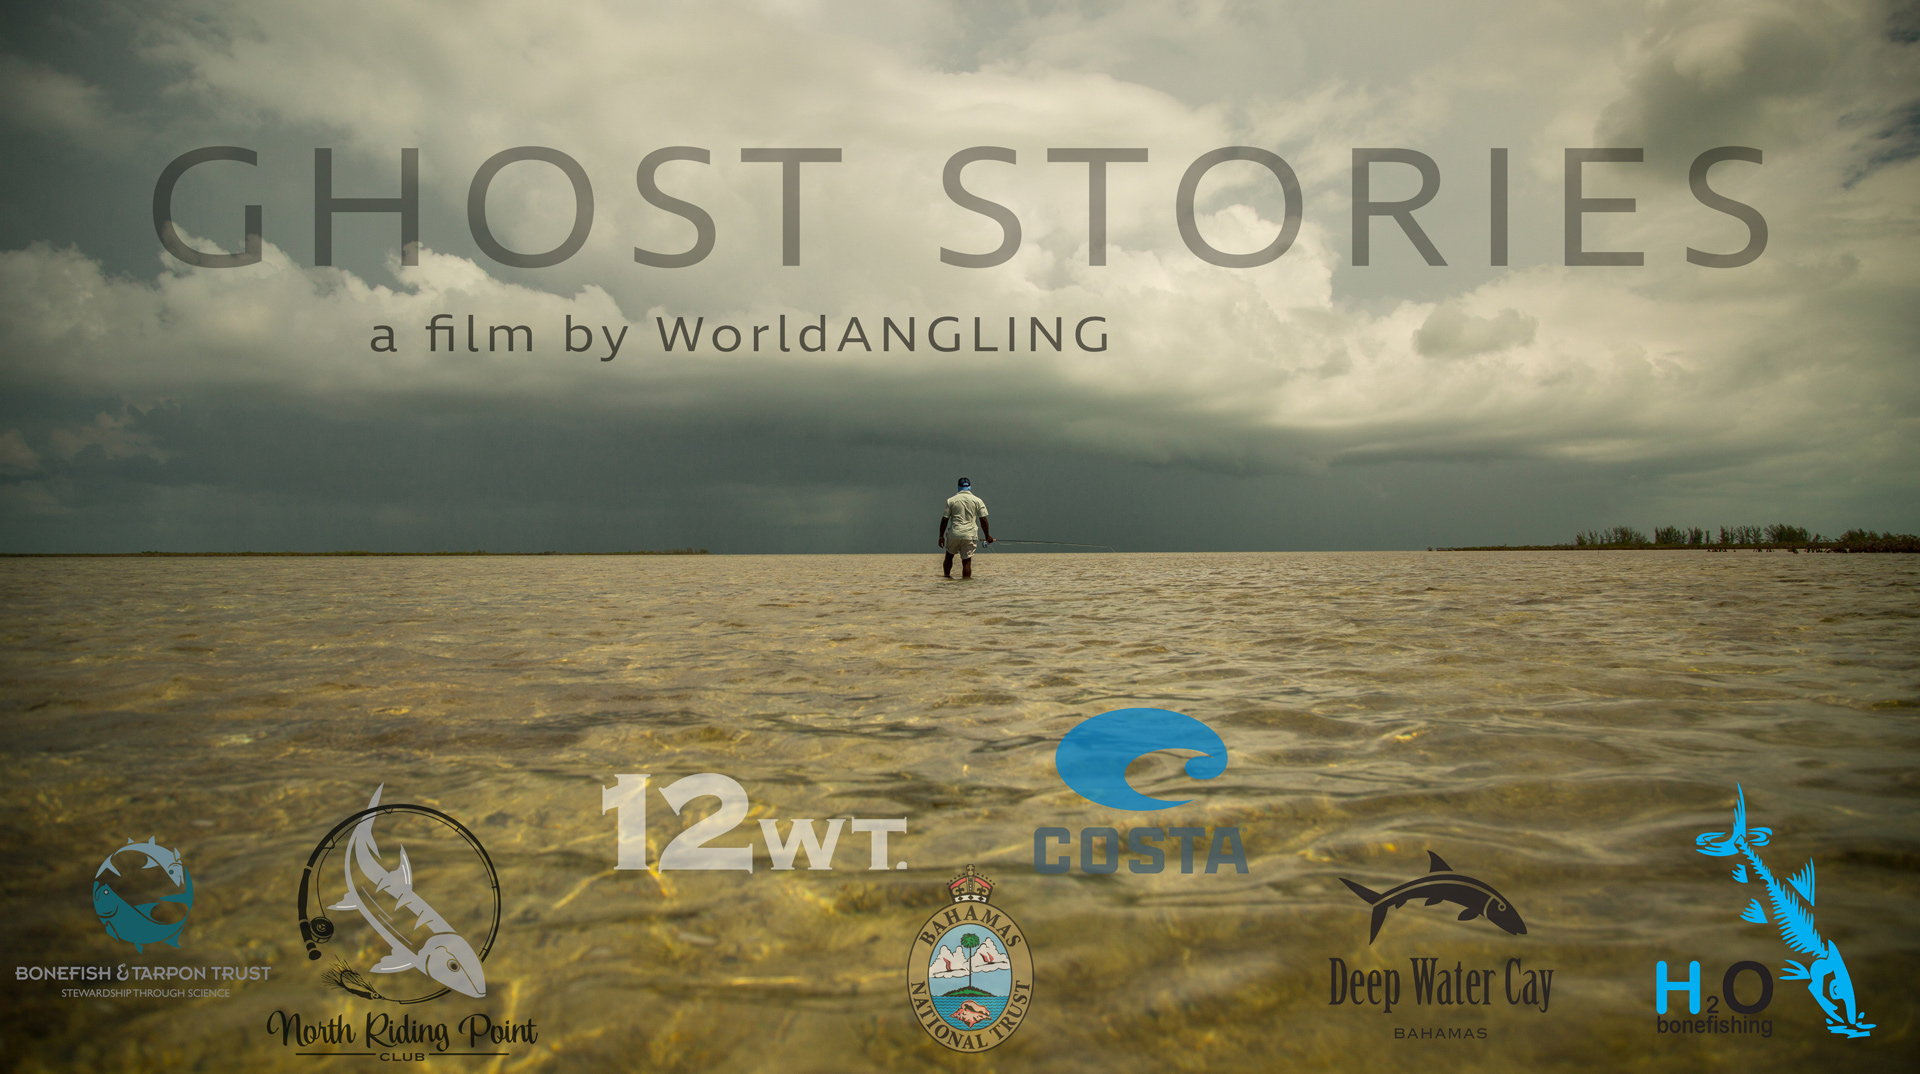 Ghost stories fly fishing film poster